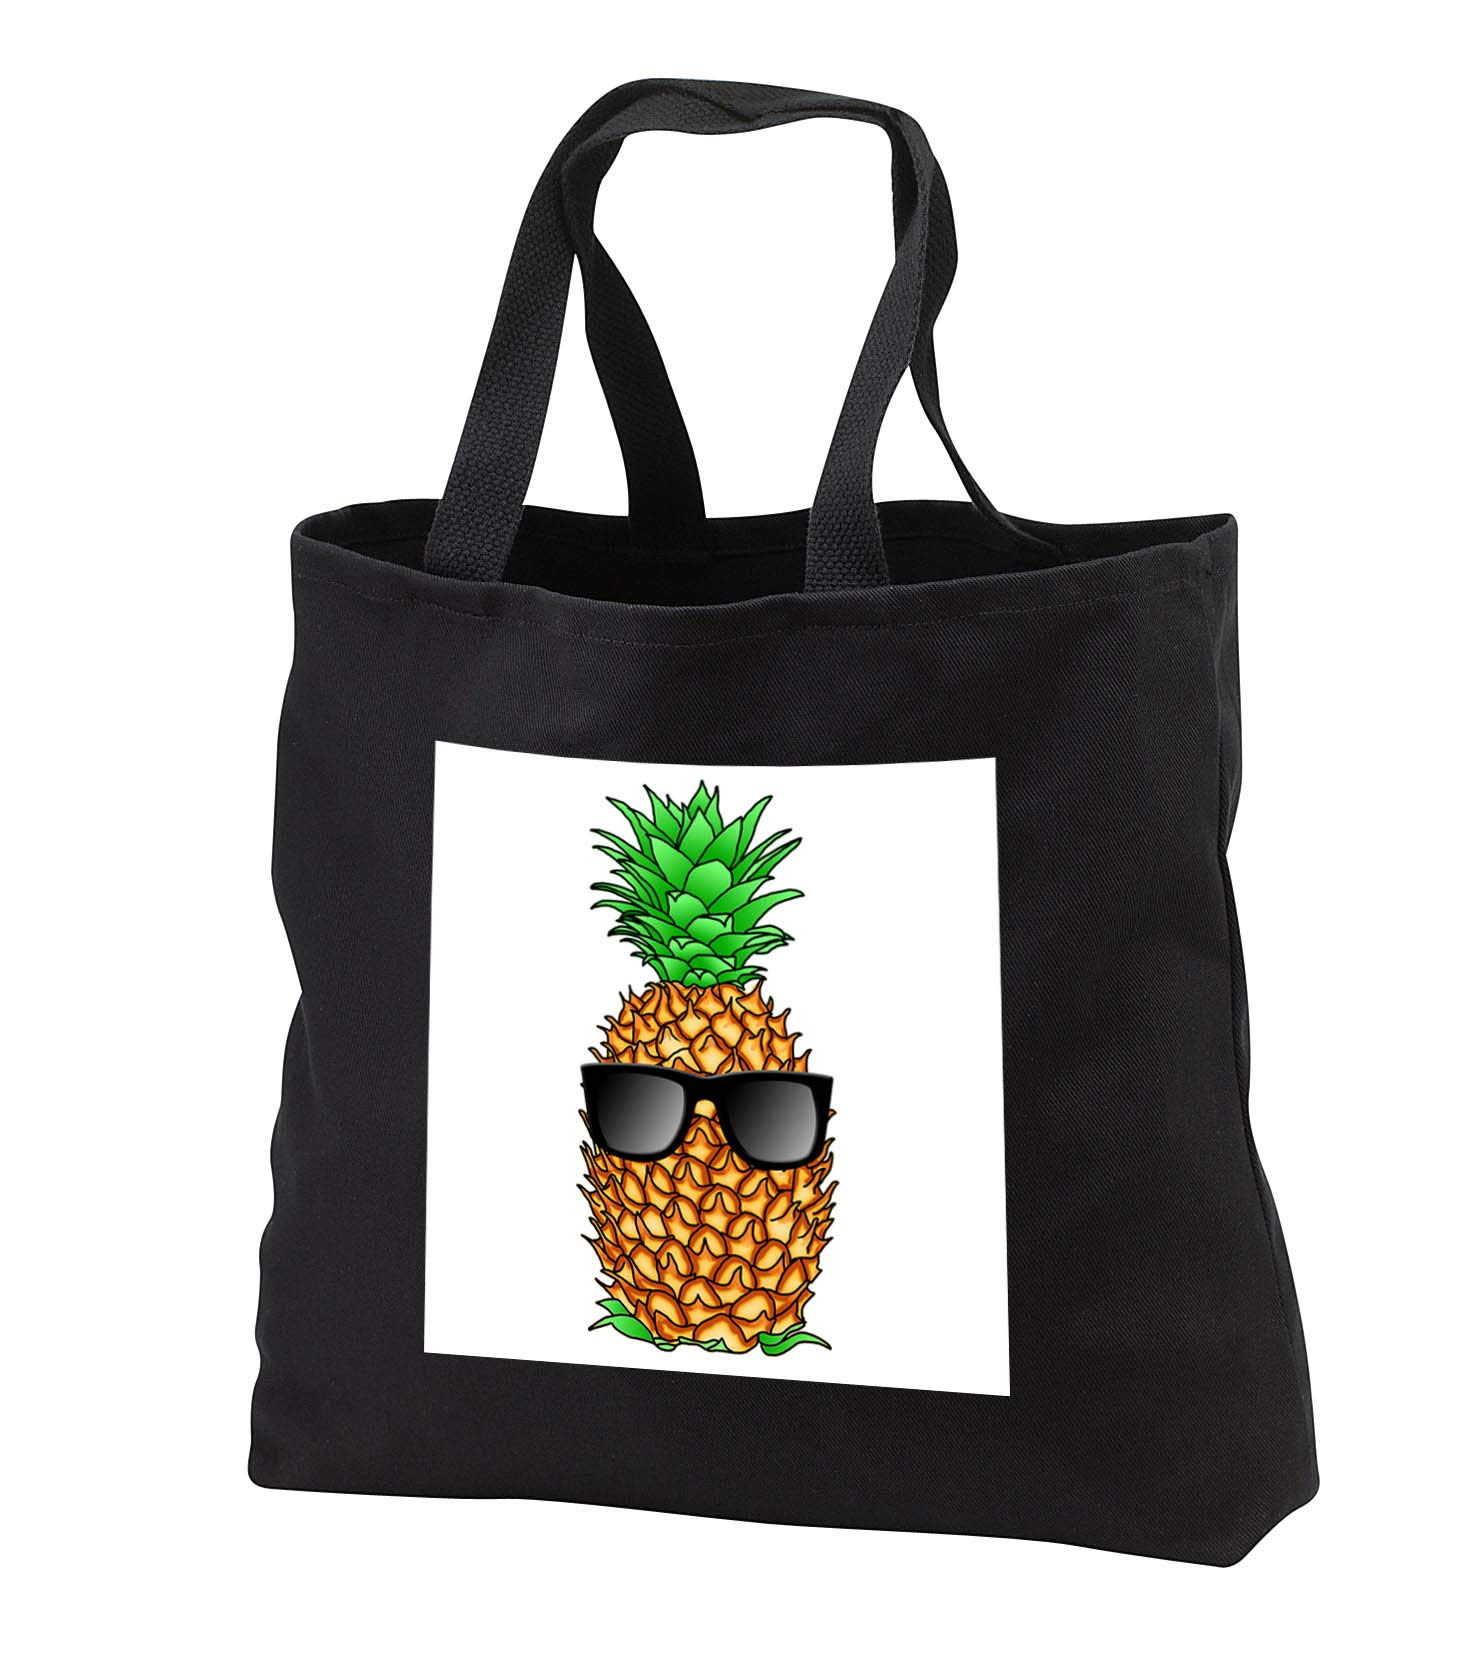 MacDonald Creative Studios – Pineapple - A funny cool tropical pineapple with sunglasses ready for the beach - Tote Bags - Black Tote Bag JUMBO 20w x 15h x 5d (tb_291867_3)